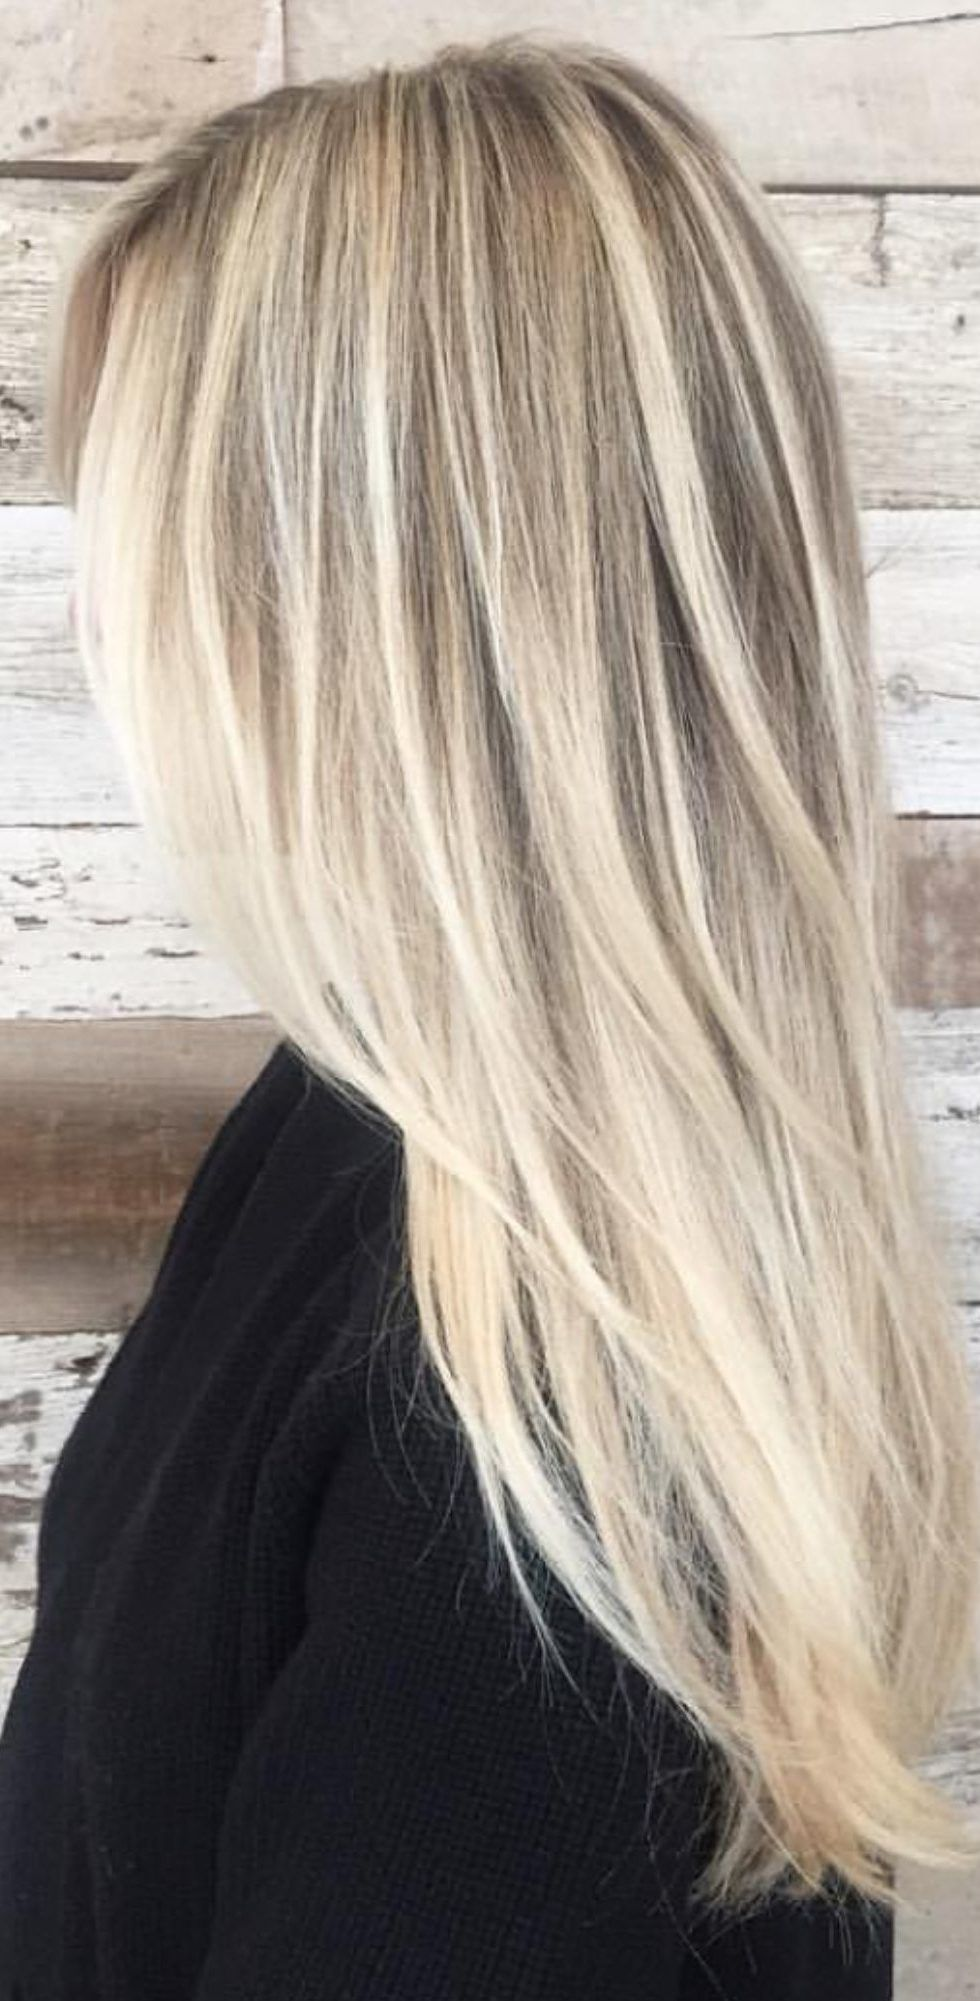 48 Beautiful Platinum Blonde Hair Colors for Summer 2019 - Latest Hair Colors